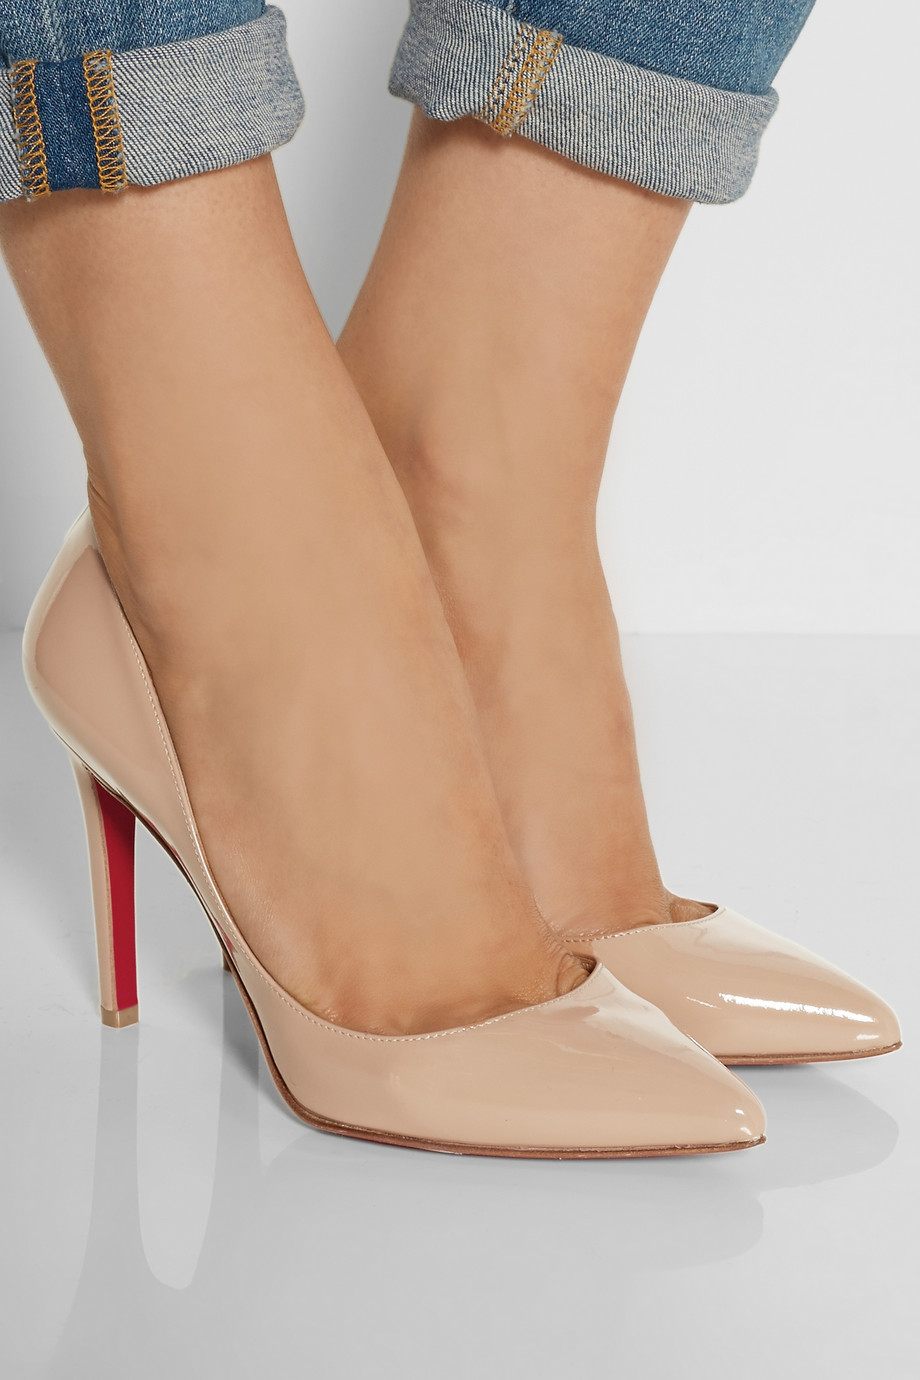 Lyst - Christian Louboutin The Pigalle 100 Patent-Leather Pumps in Pink 68f5eb4208af